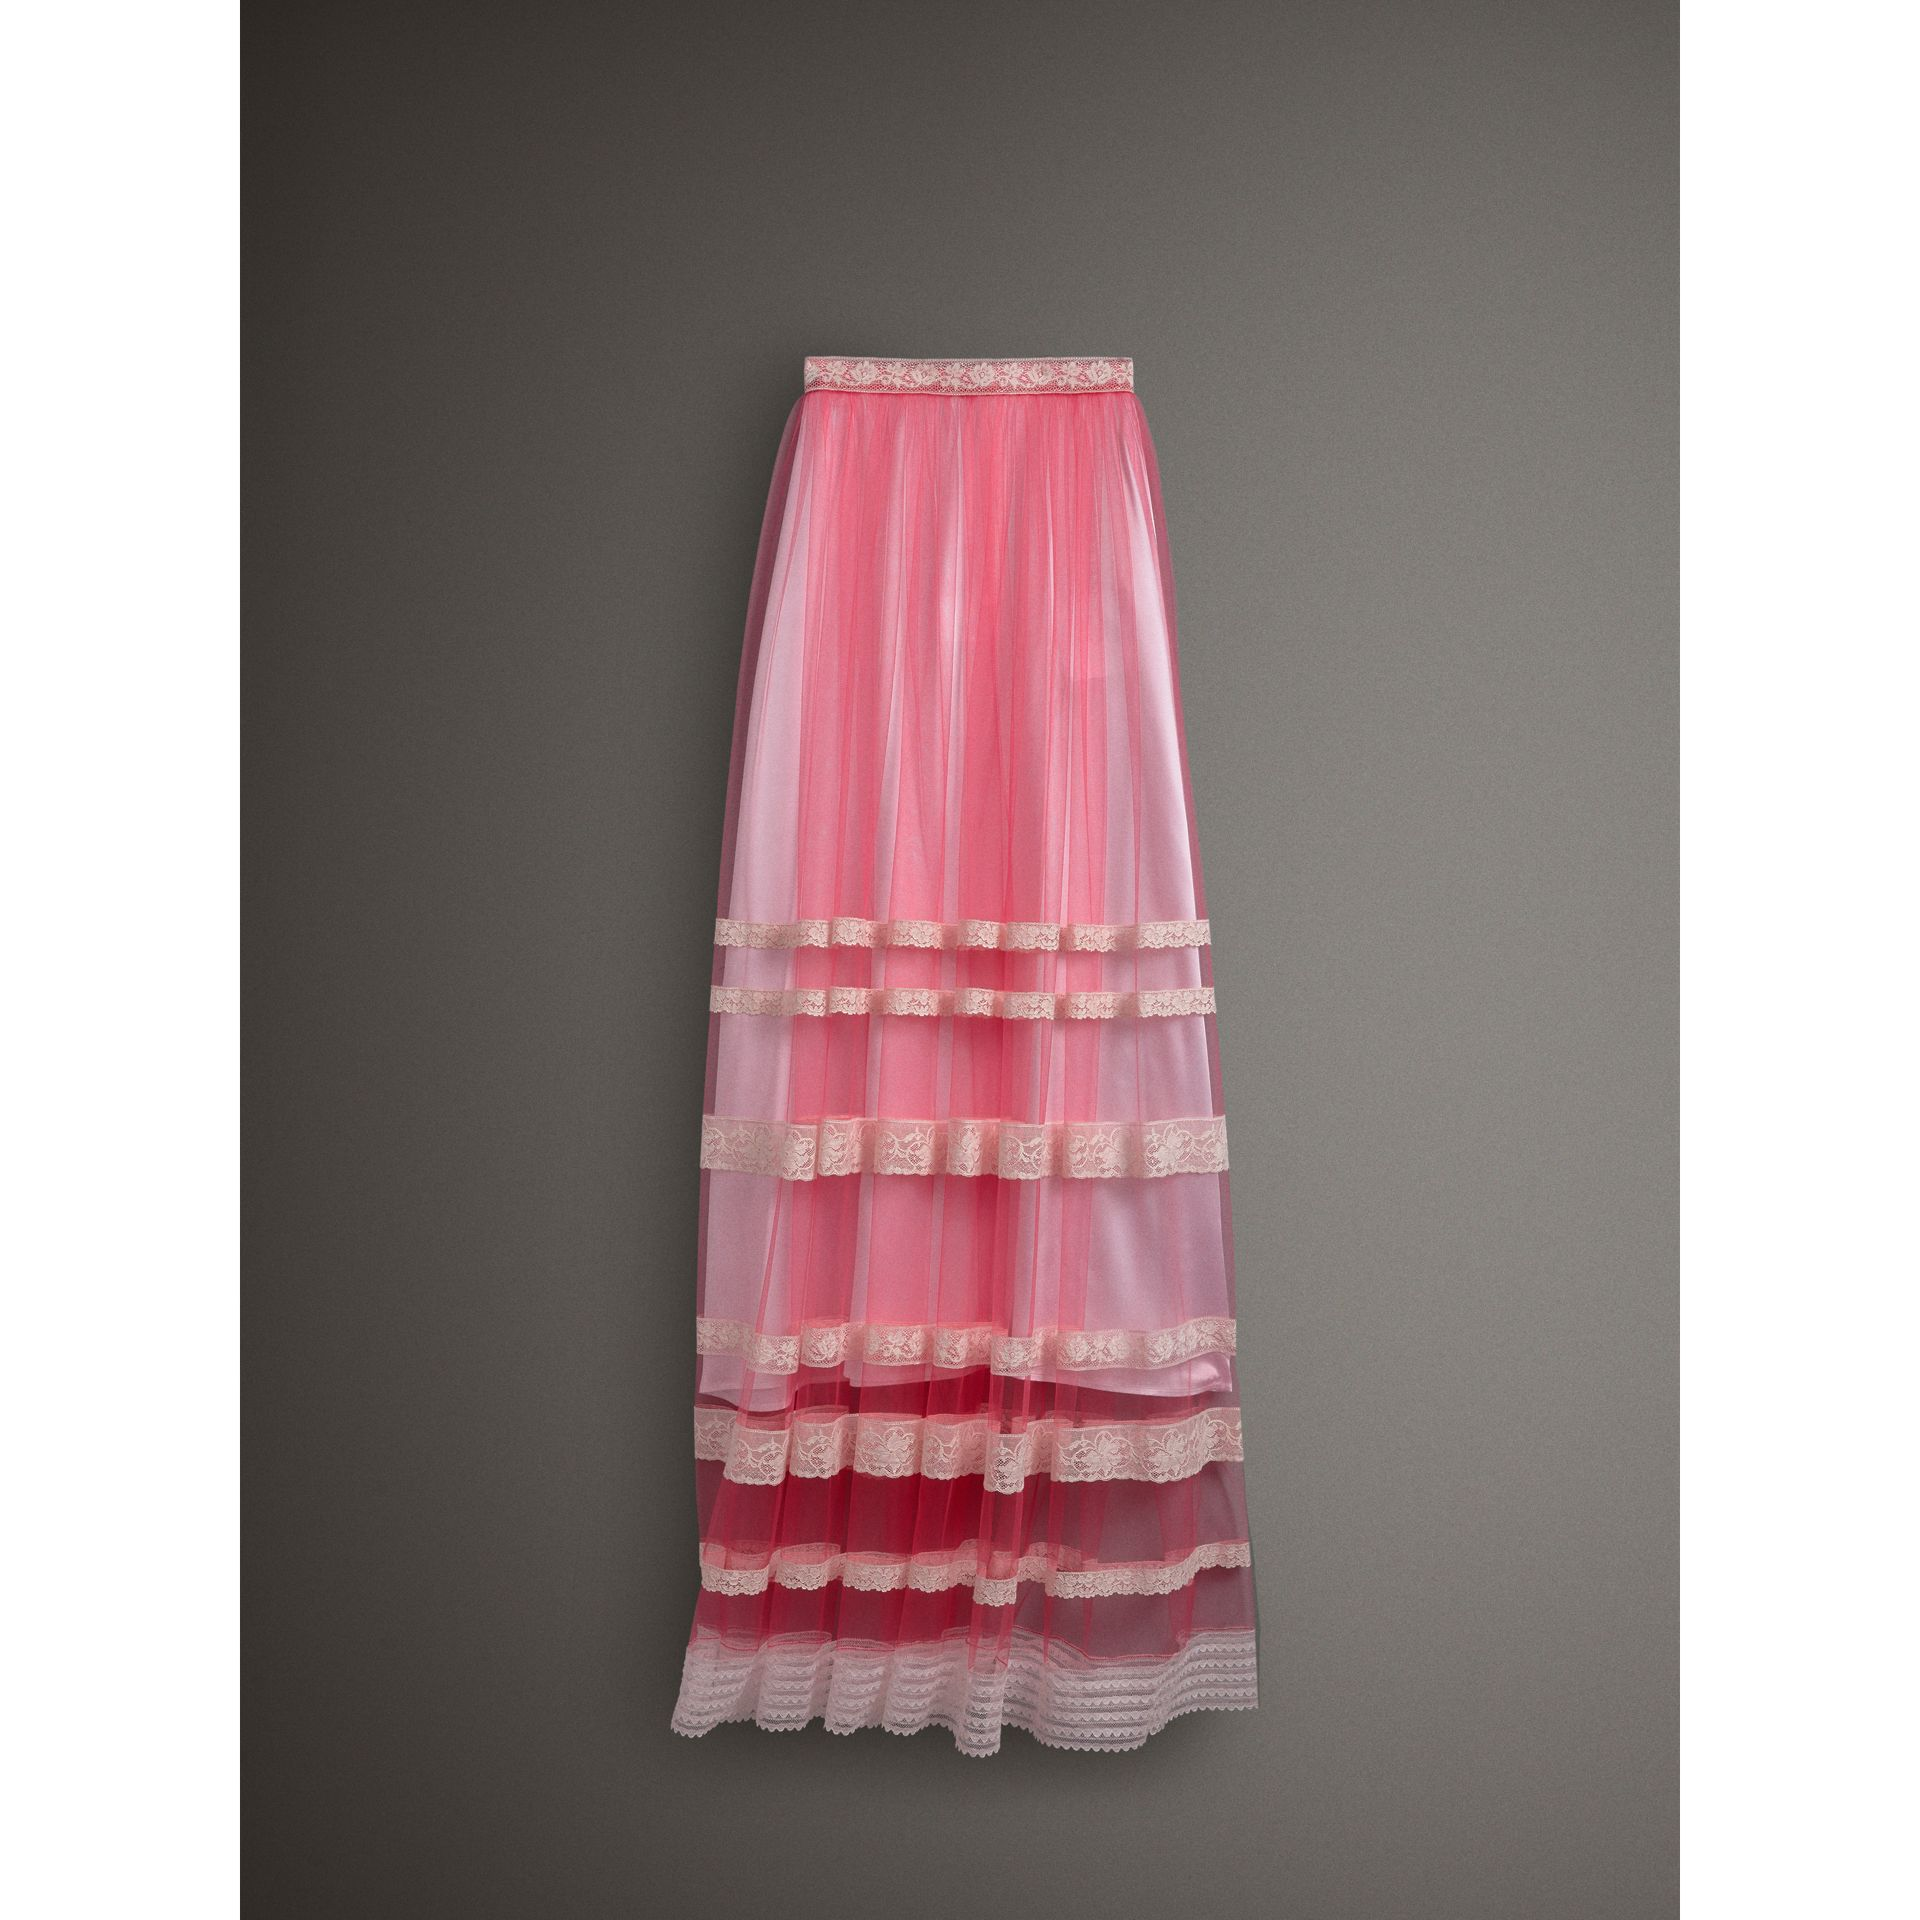 Floor-length English Lace Trim Tulle Skirt in Bright Pink - Women | Burberry - gallery image 3